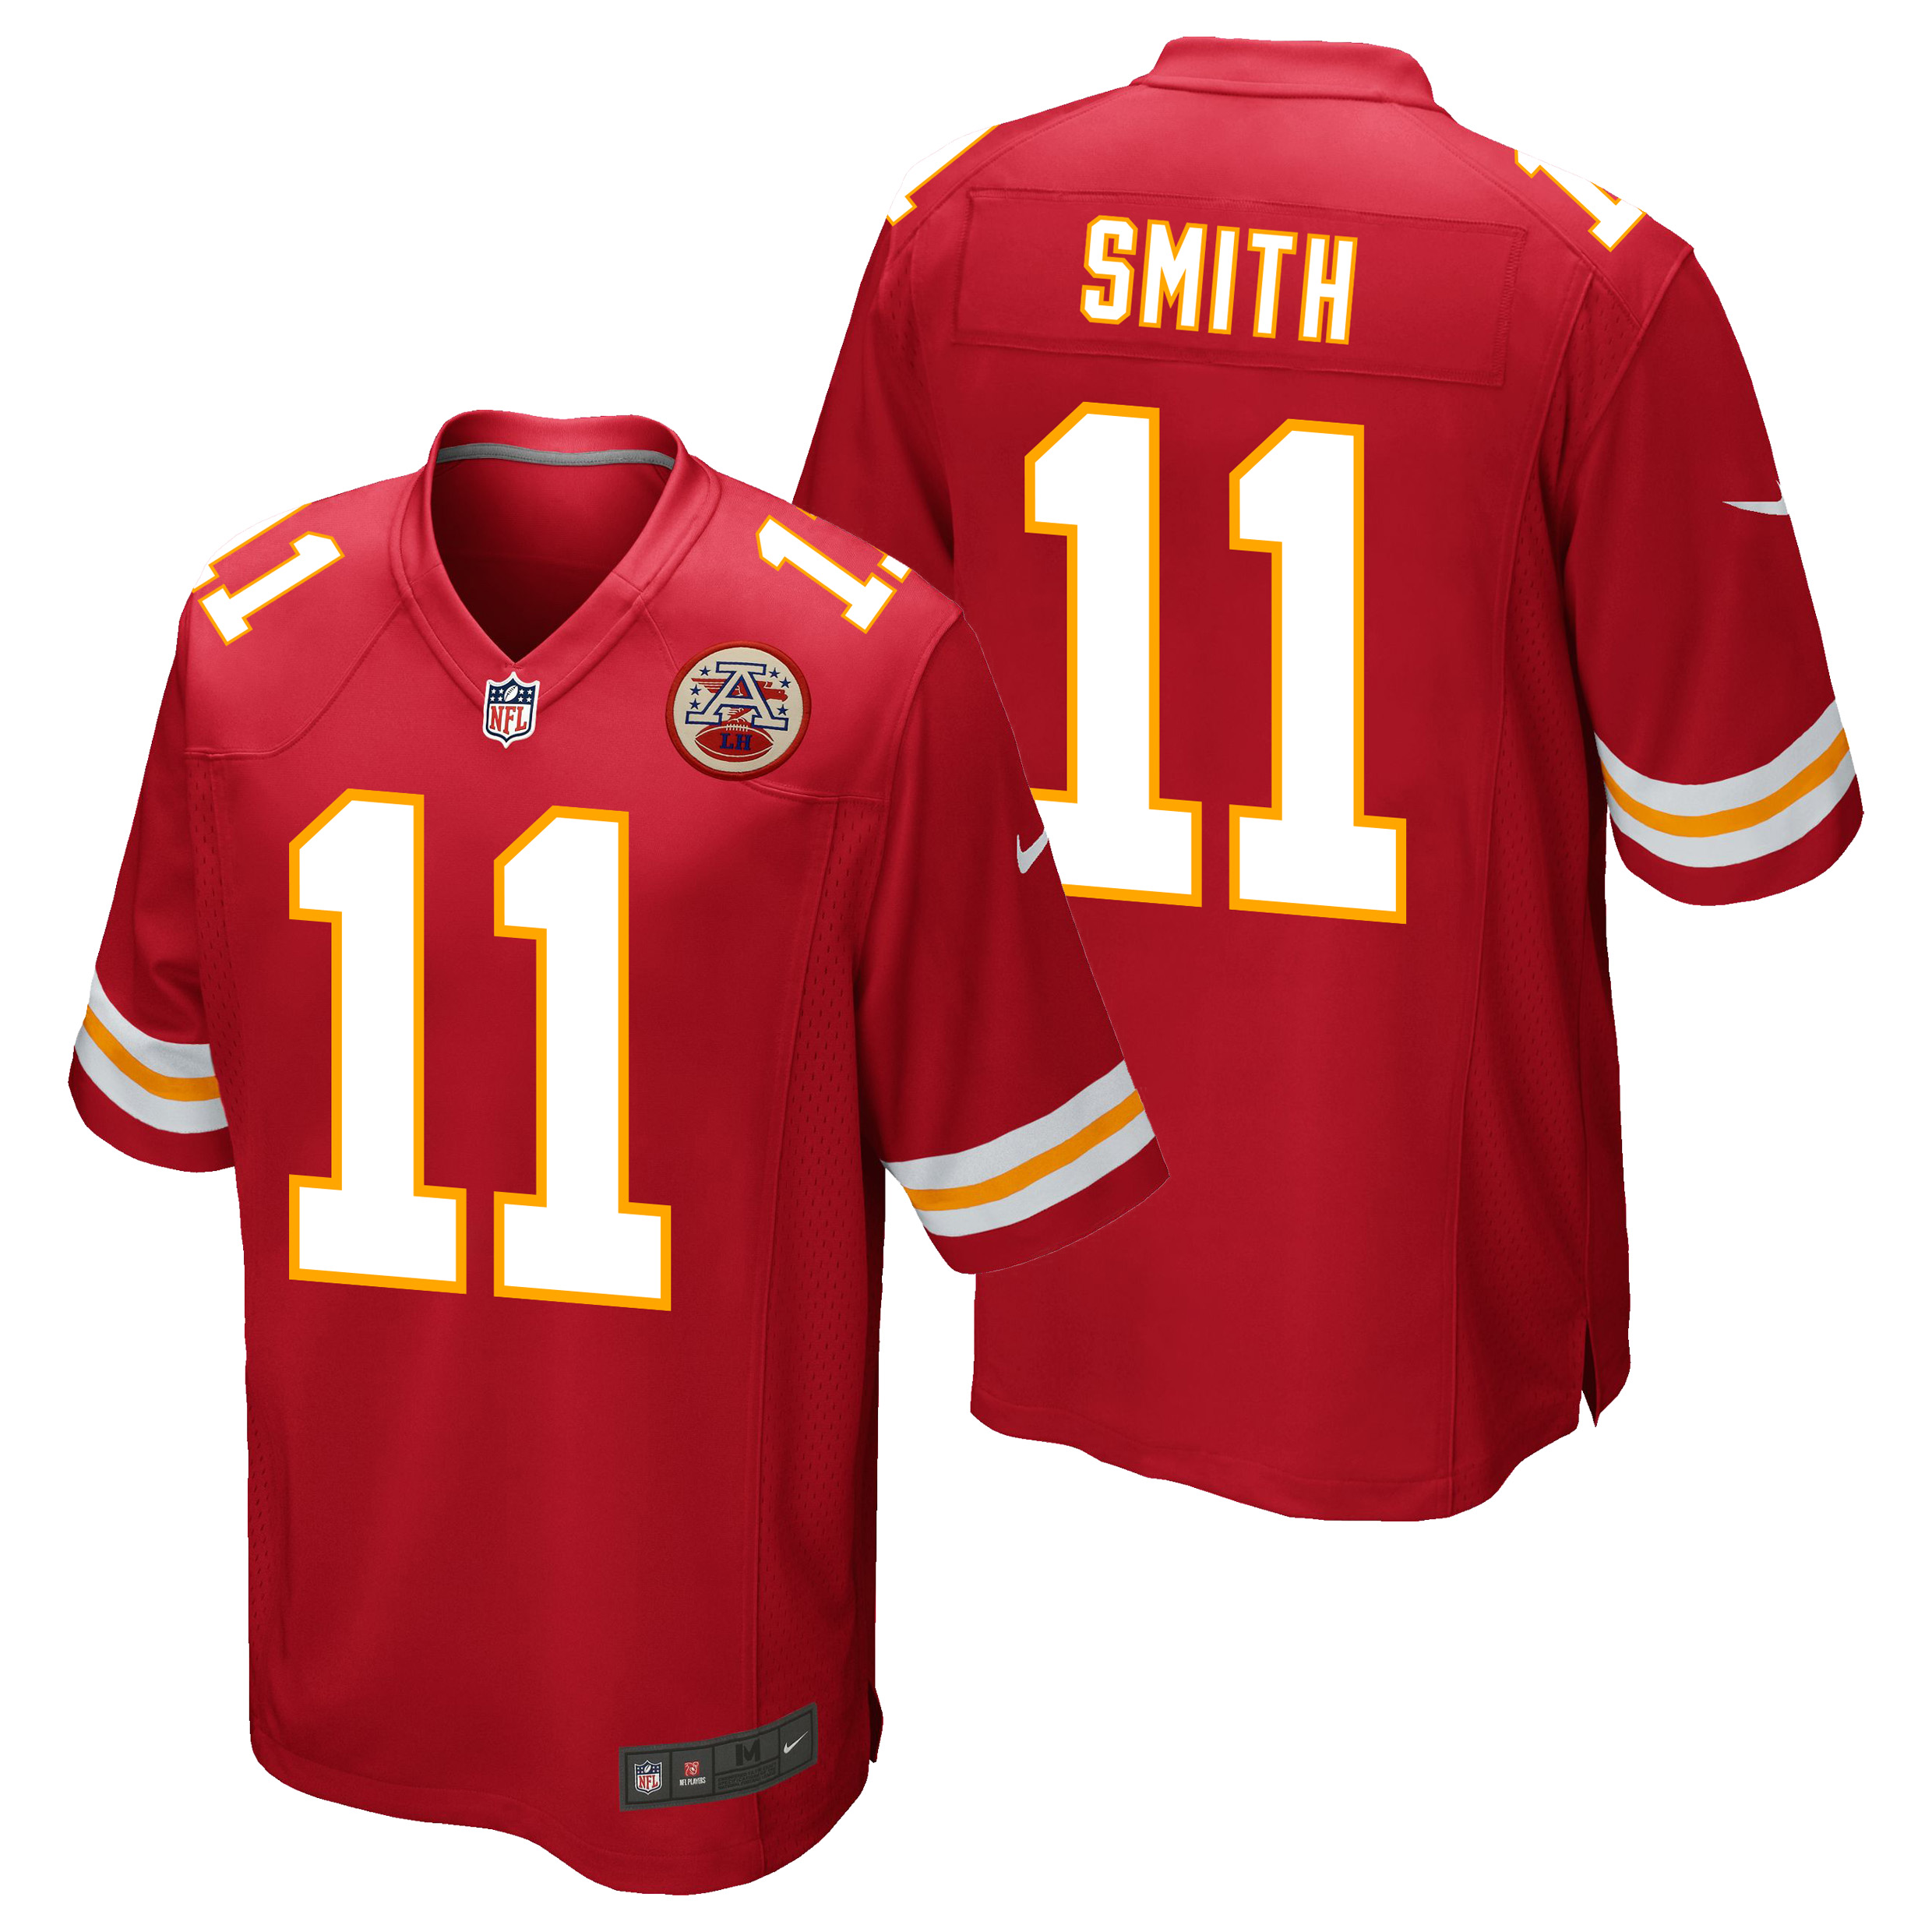 Kansas City Chiefs Home Game Jersey - Alex Smith